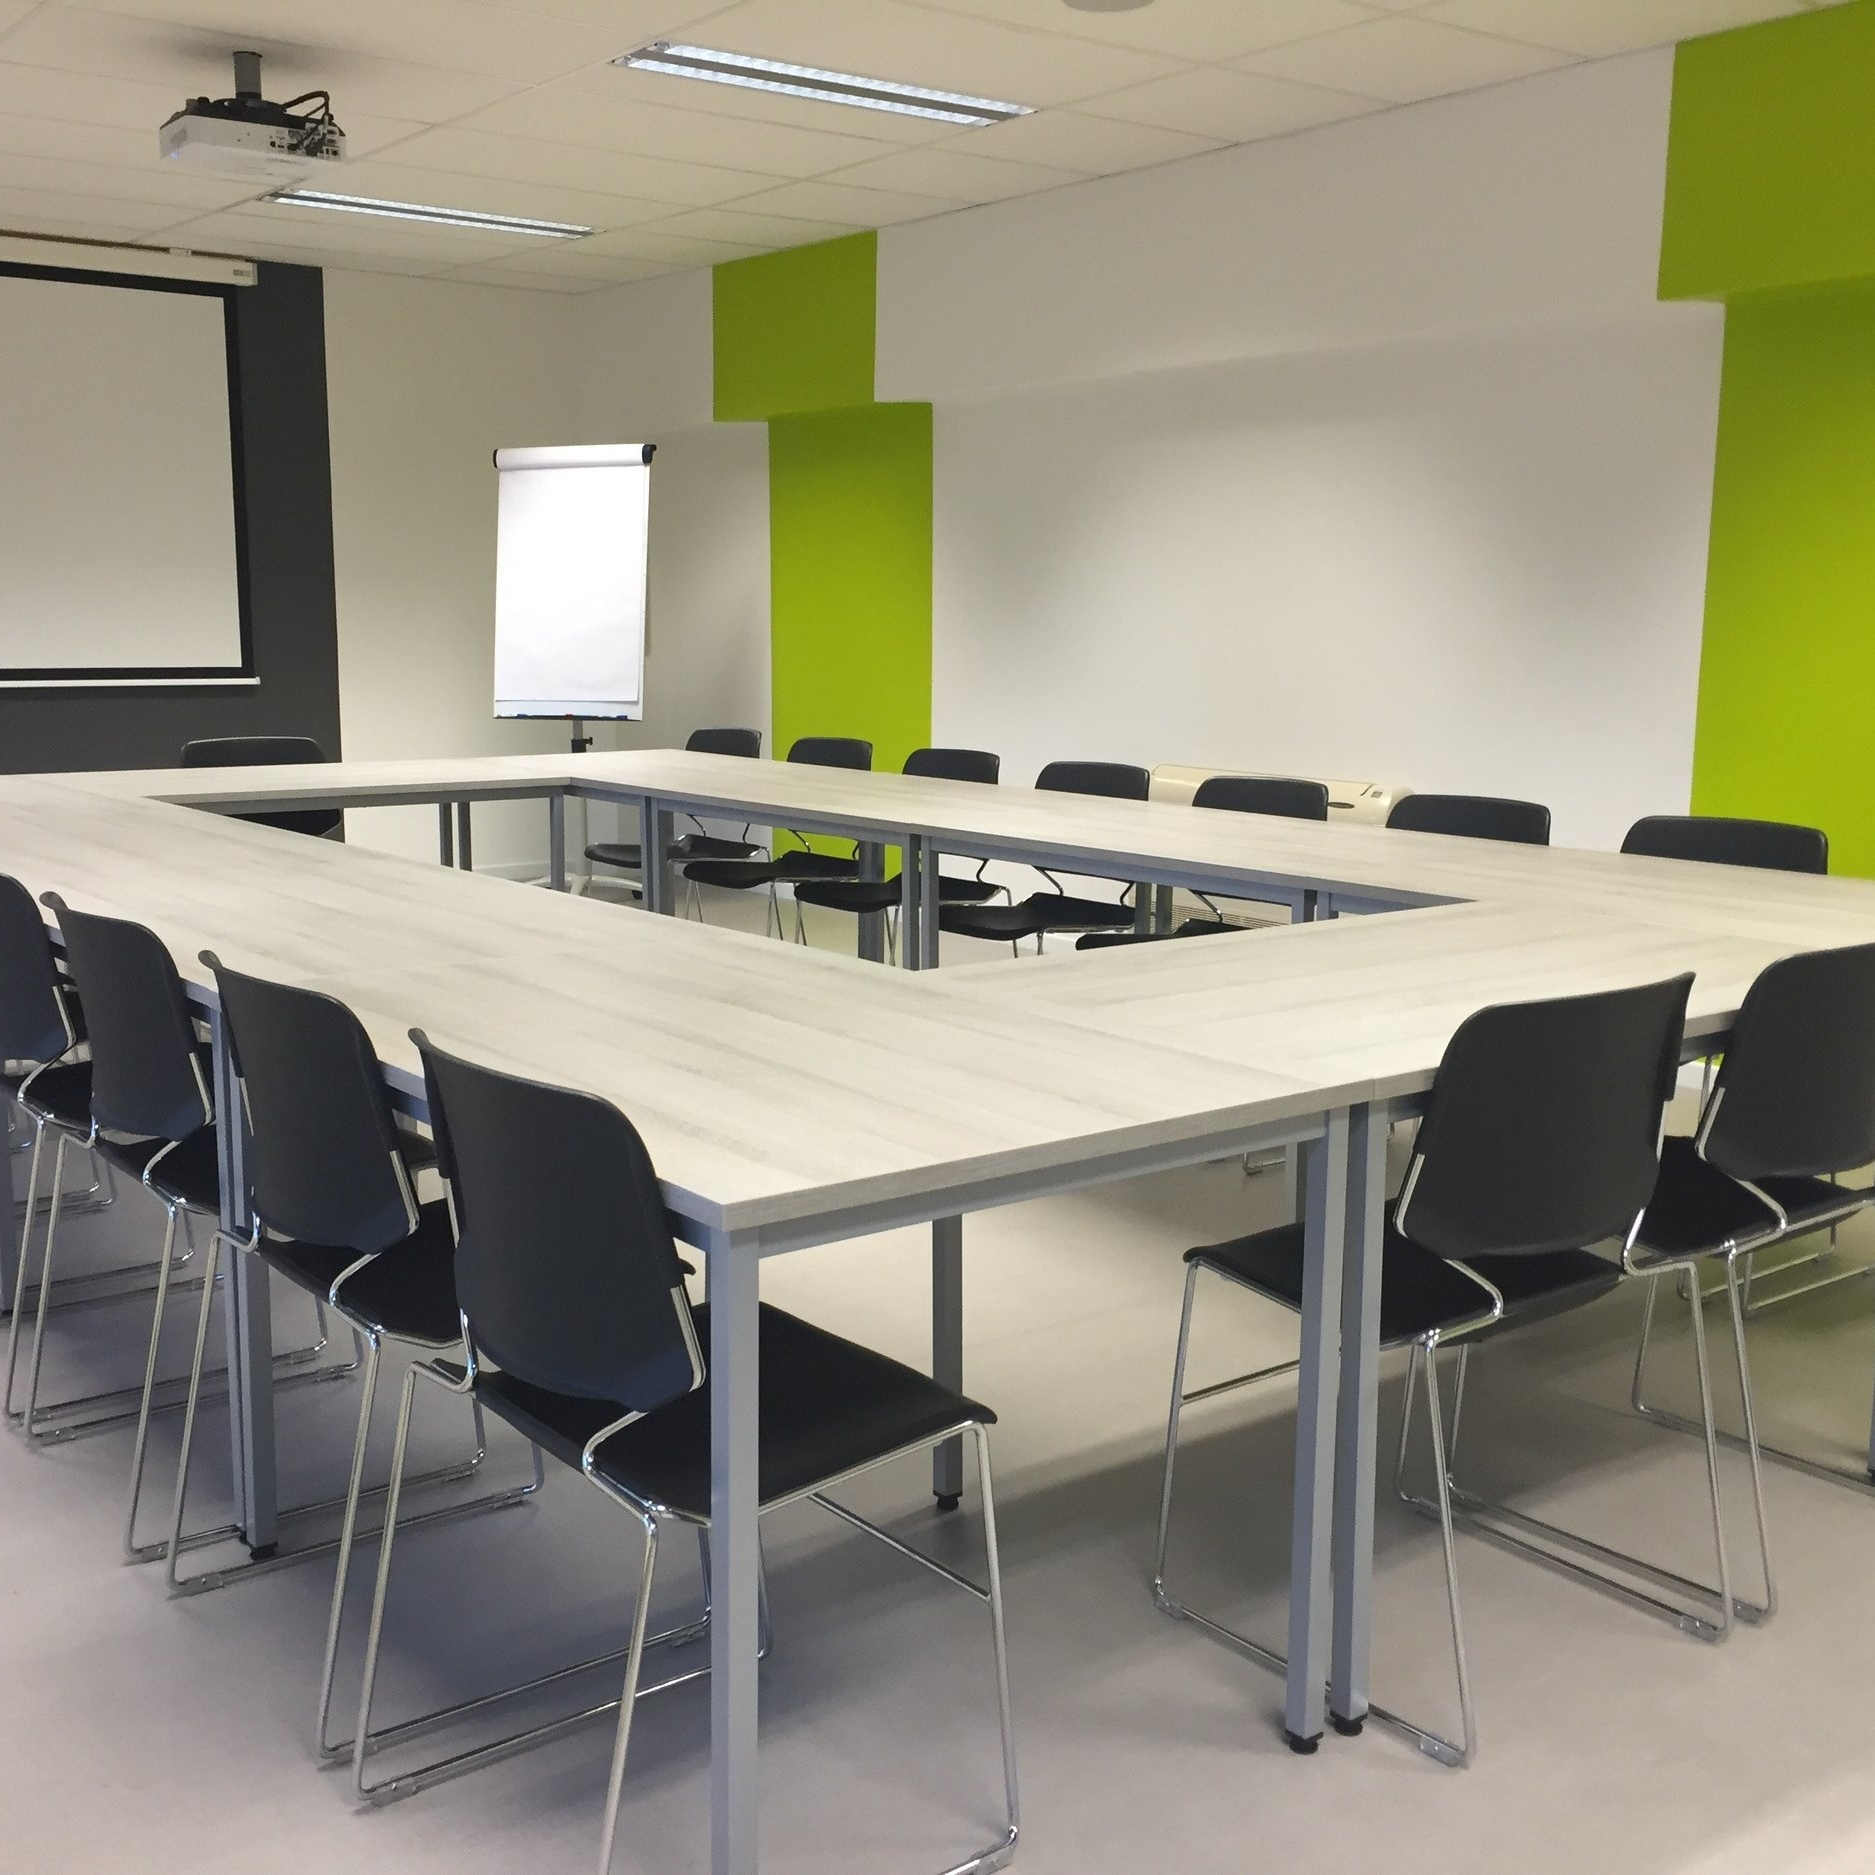 Boardrooms and Meeting Rooms - Discussion, presentations, audio and video conferencing all depend on good acoustics.Read more or Ask us for advice